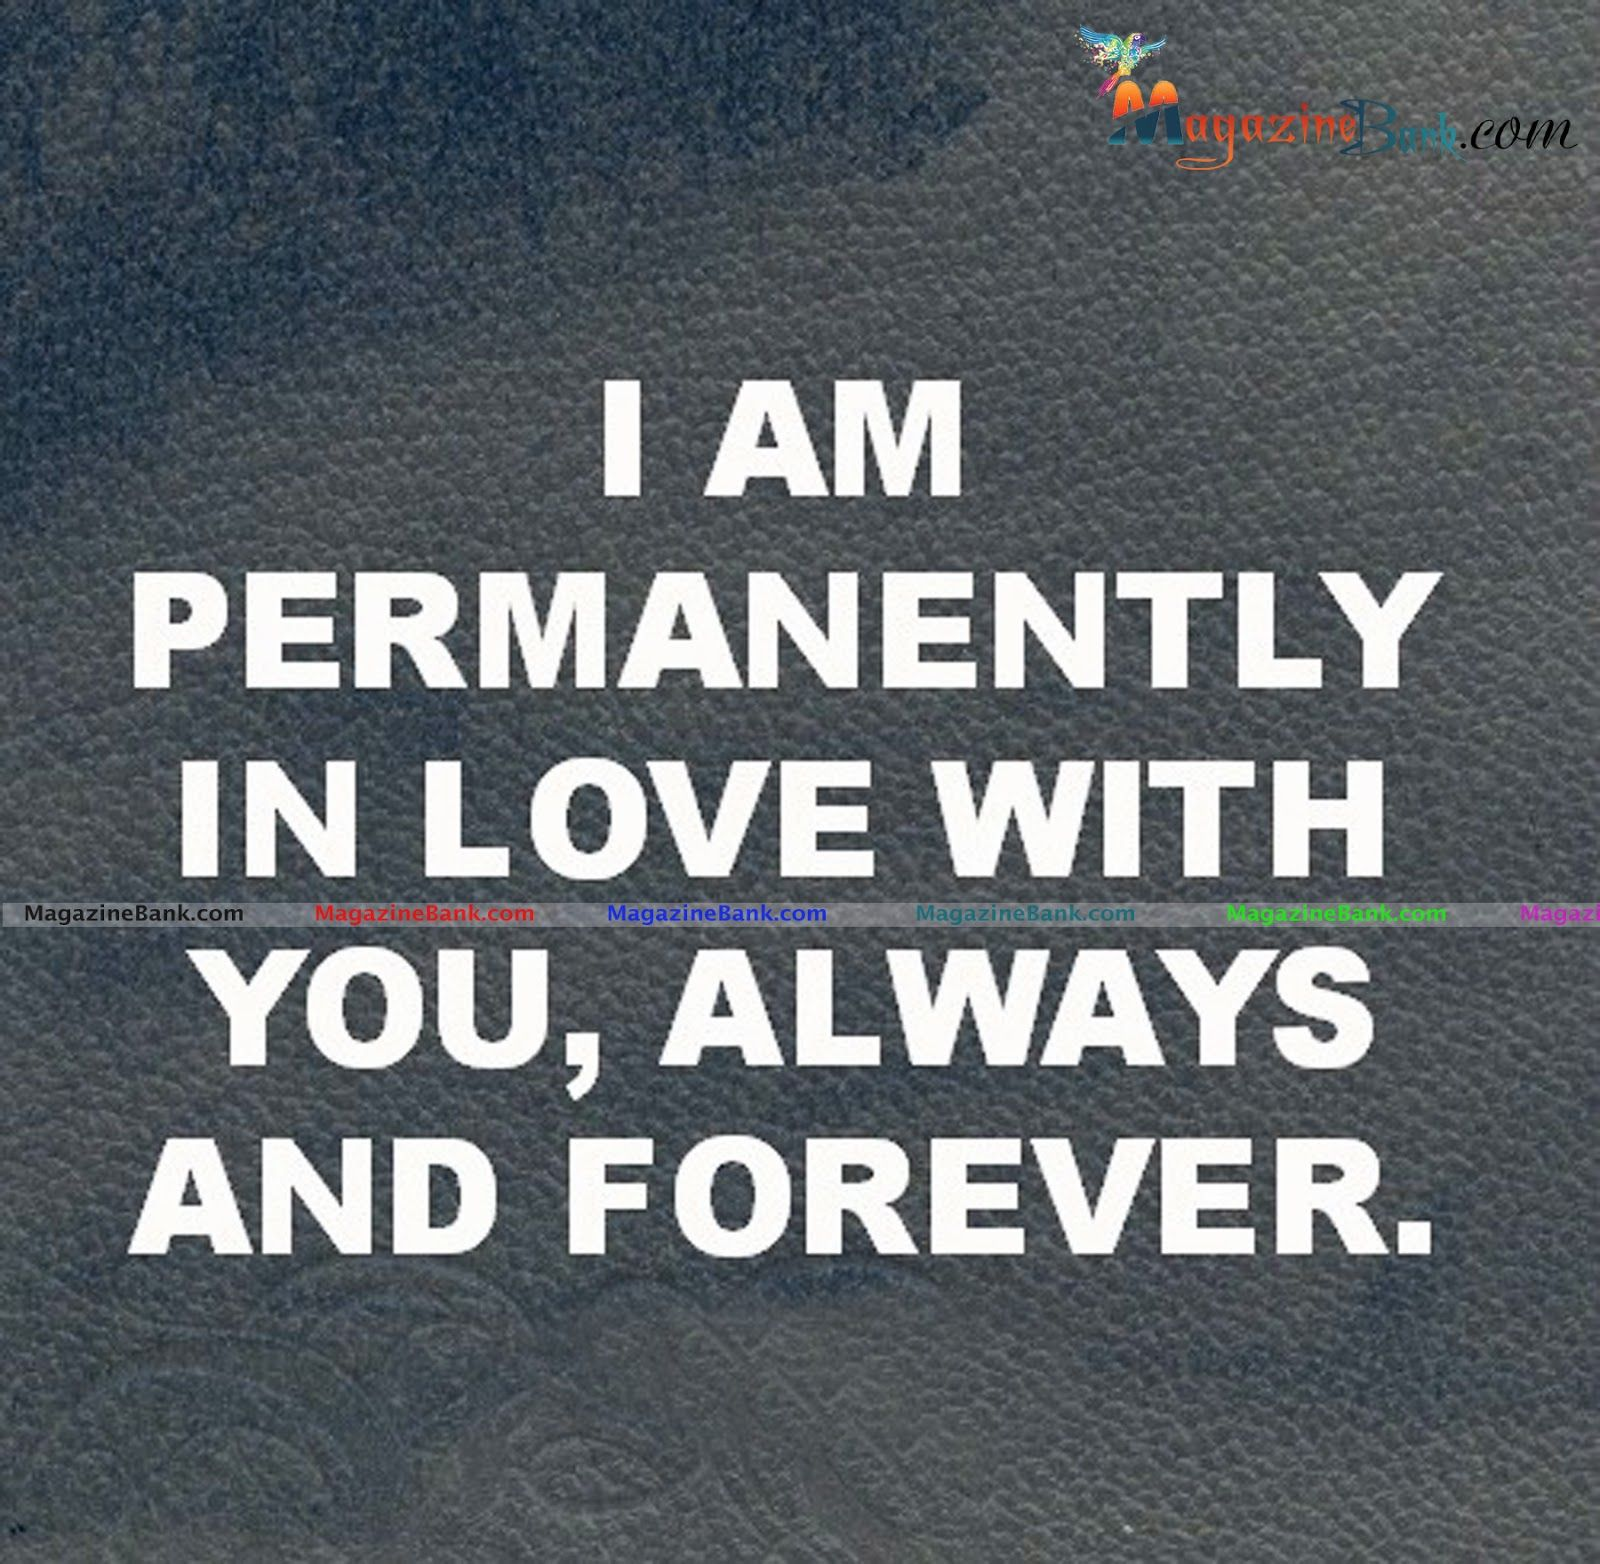 I Will Always Love You Quotes: I Will Always Love You Quotes For Her QuotesGram By